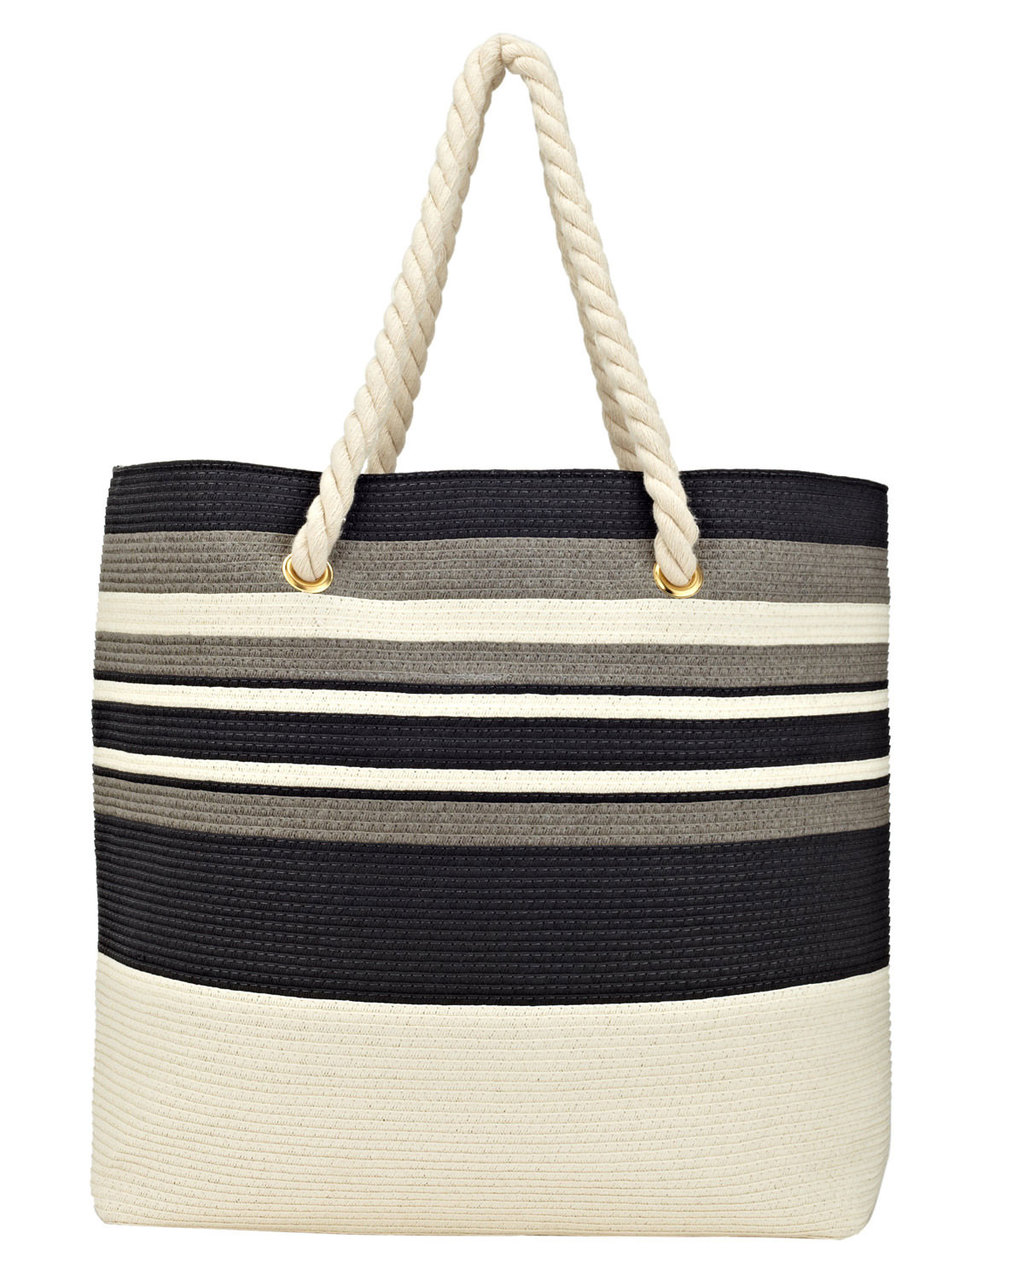 Sally Stripe Bag - secondary colour: ivory/cream; predominant colour: black; occasions: casual, holiday; type of pattern: heavy; style: tote; length: shoulder (tucks under arm); size: oversized; material: fabric; pattern: striped; finish: plain; season: s/s 2016; wardrobe: highlight